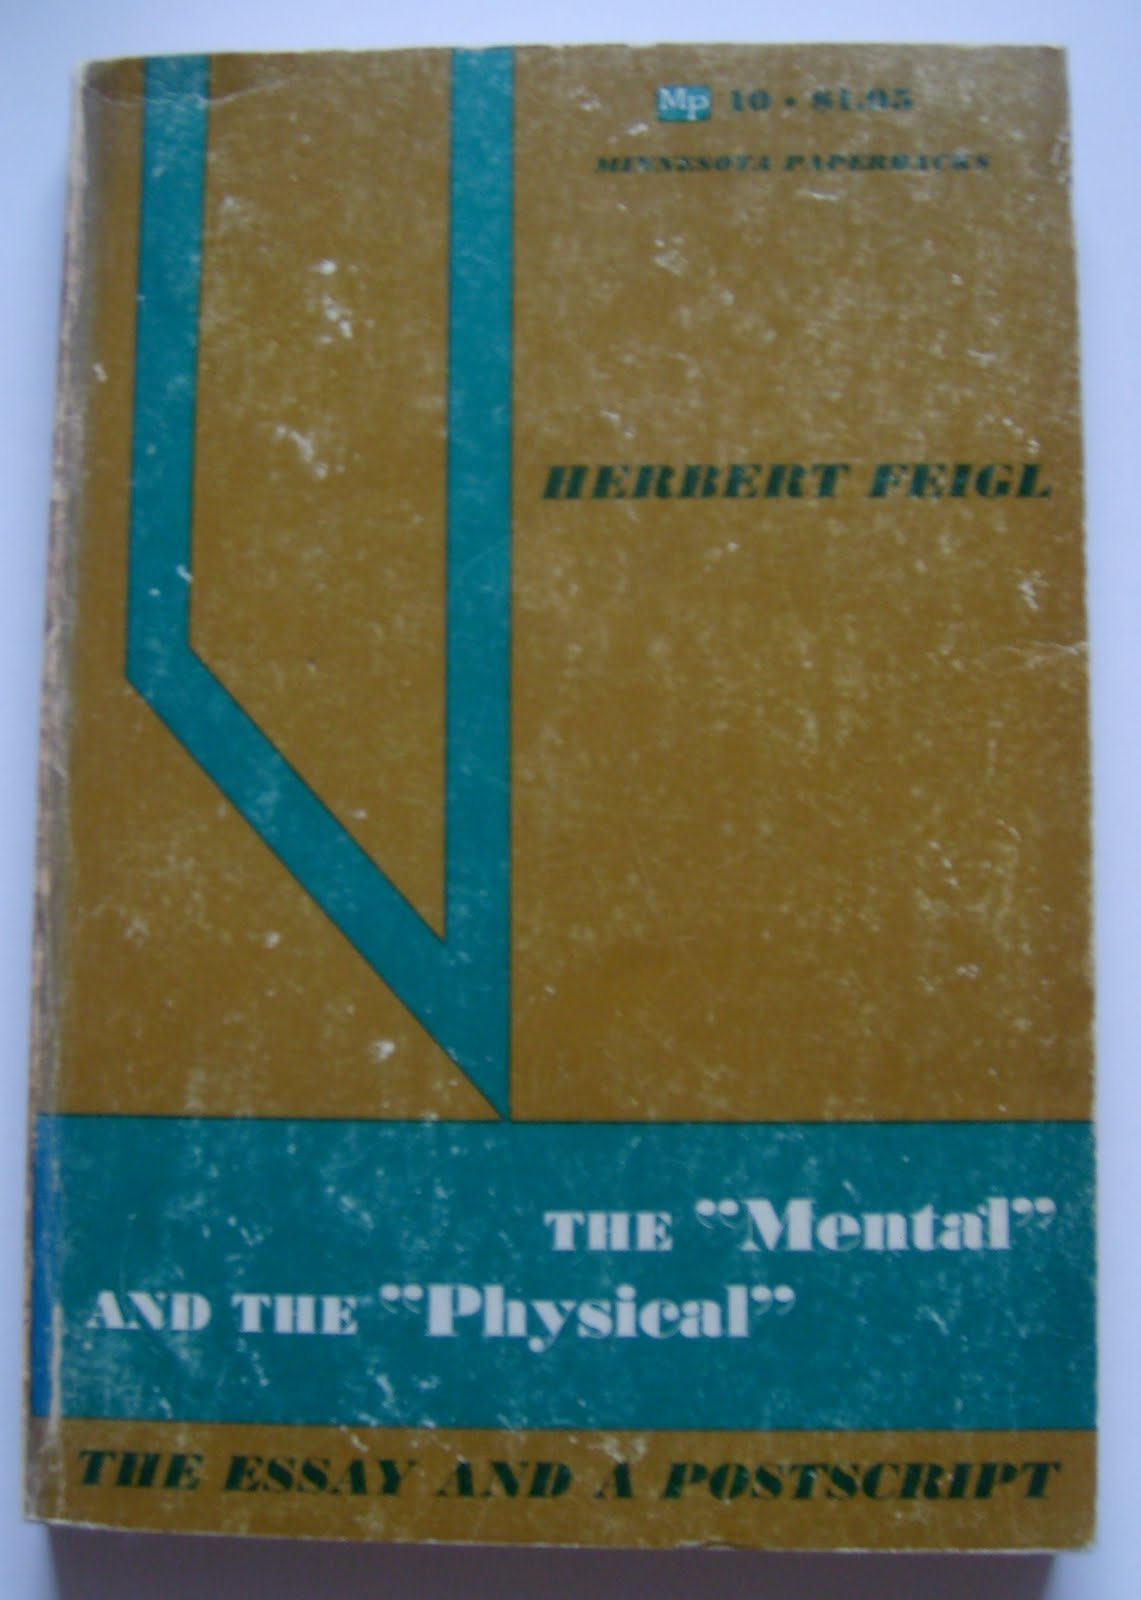 the mental and the physical the essay and a postscript The mental and the physical the essay and the postscript [s]o that both the transitive indicativeness and the subjective animal status proper to all mind are corollaries of materialism.